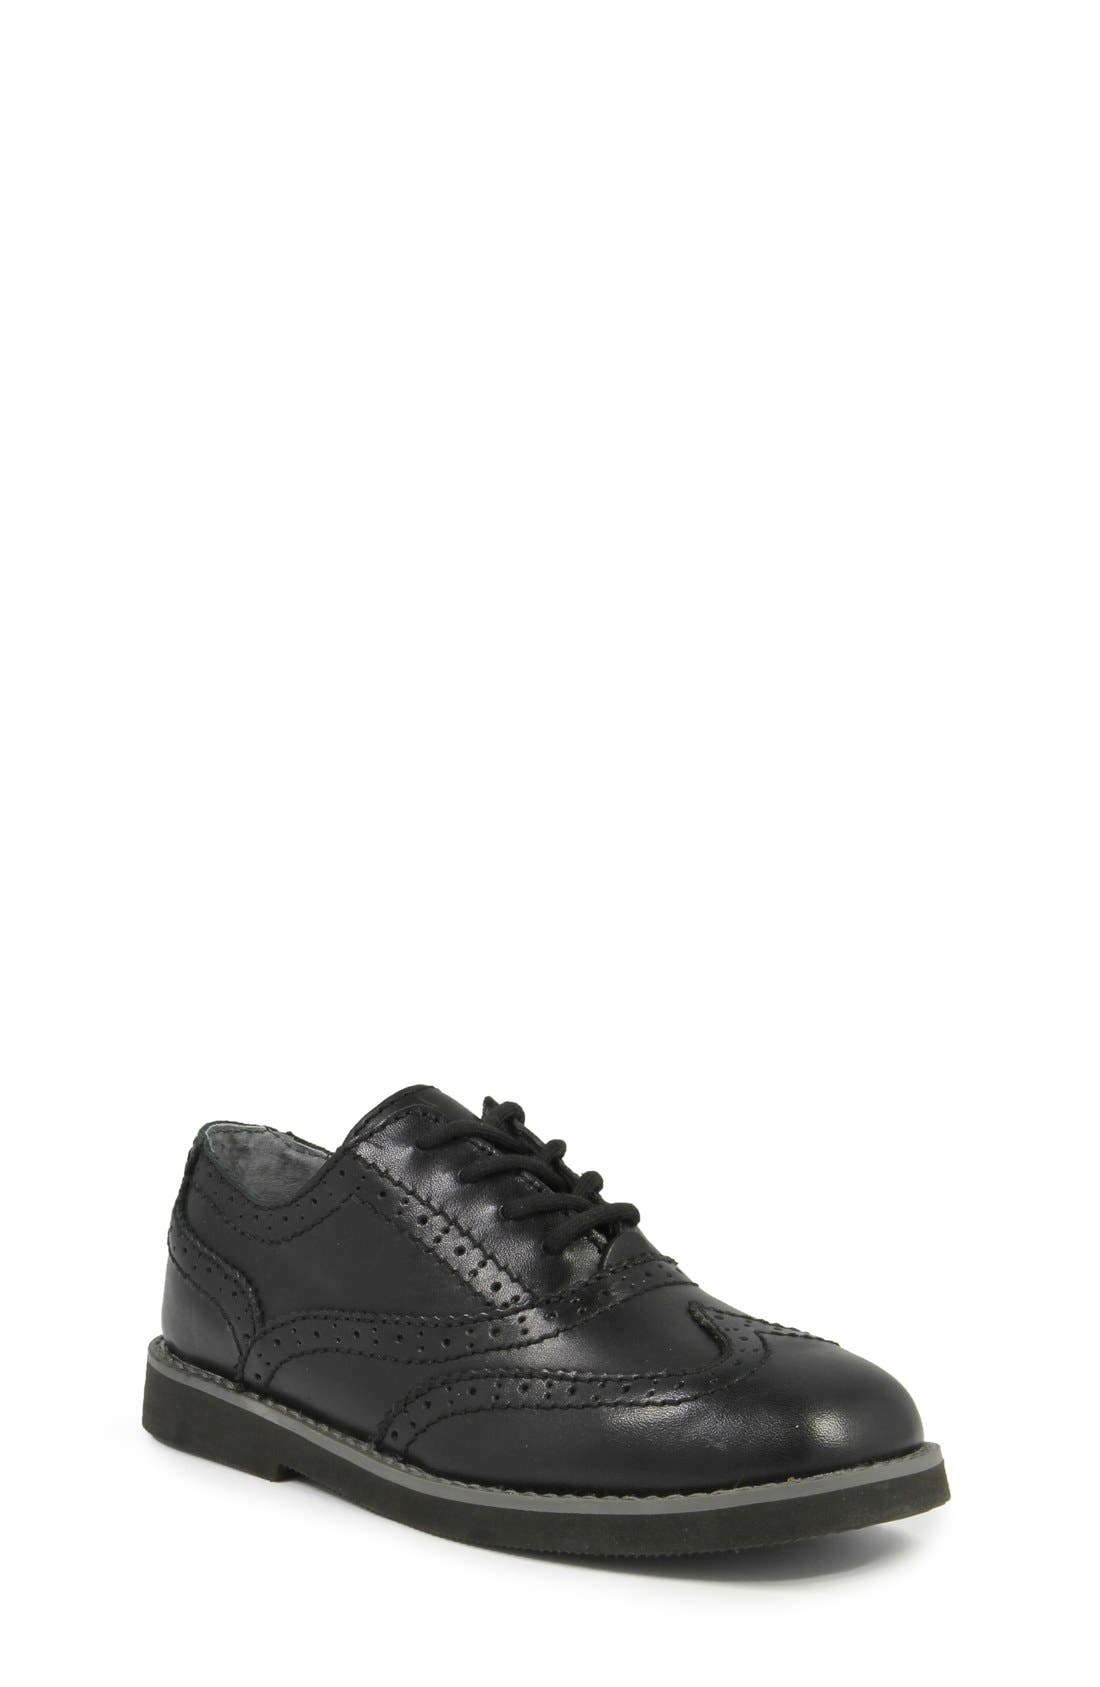 'Bucktown' Wingtip,                         Main,                         color, 005